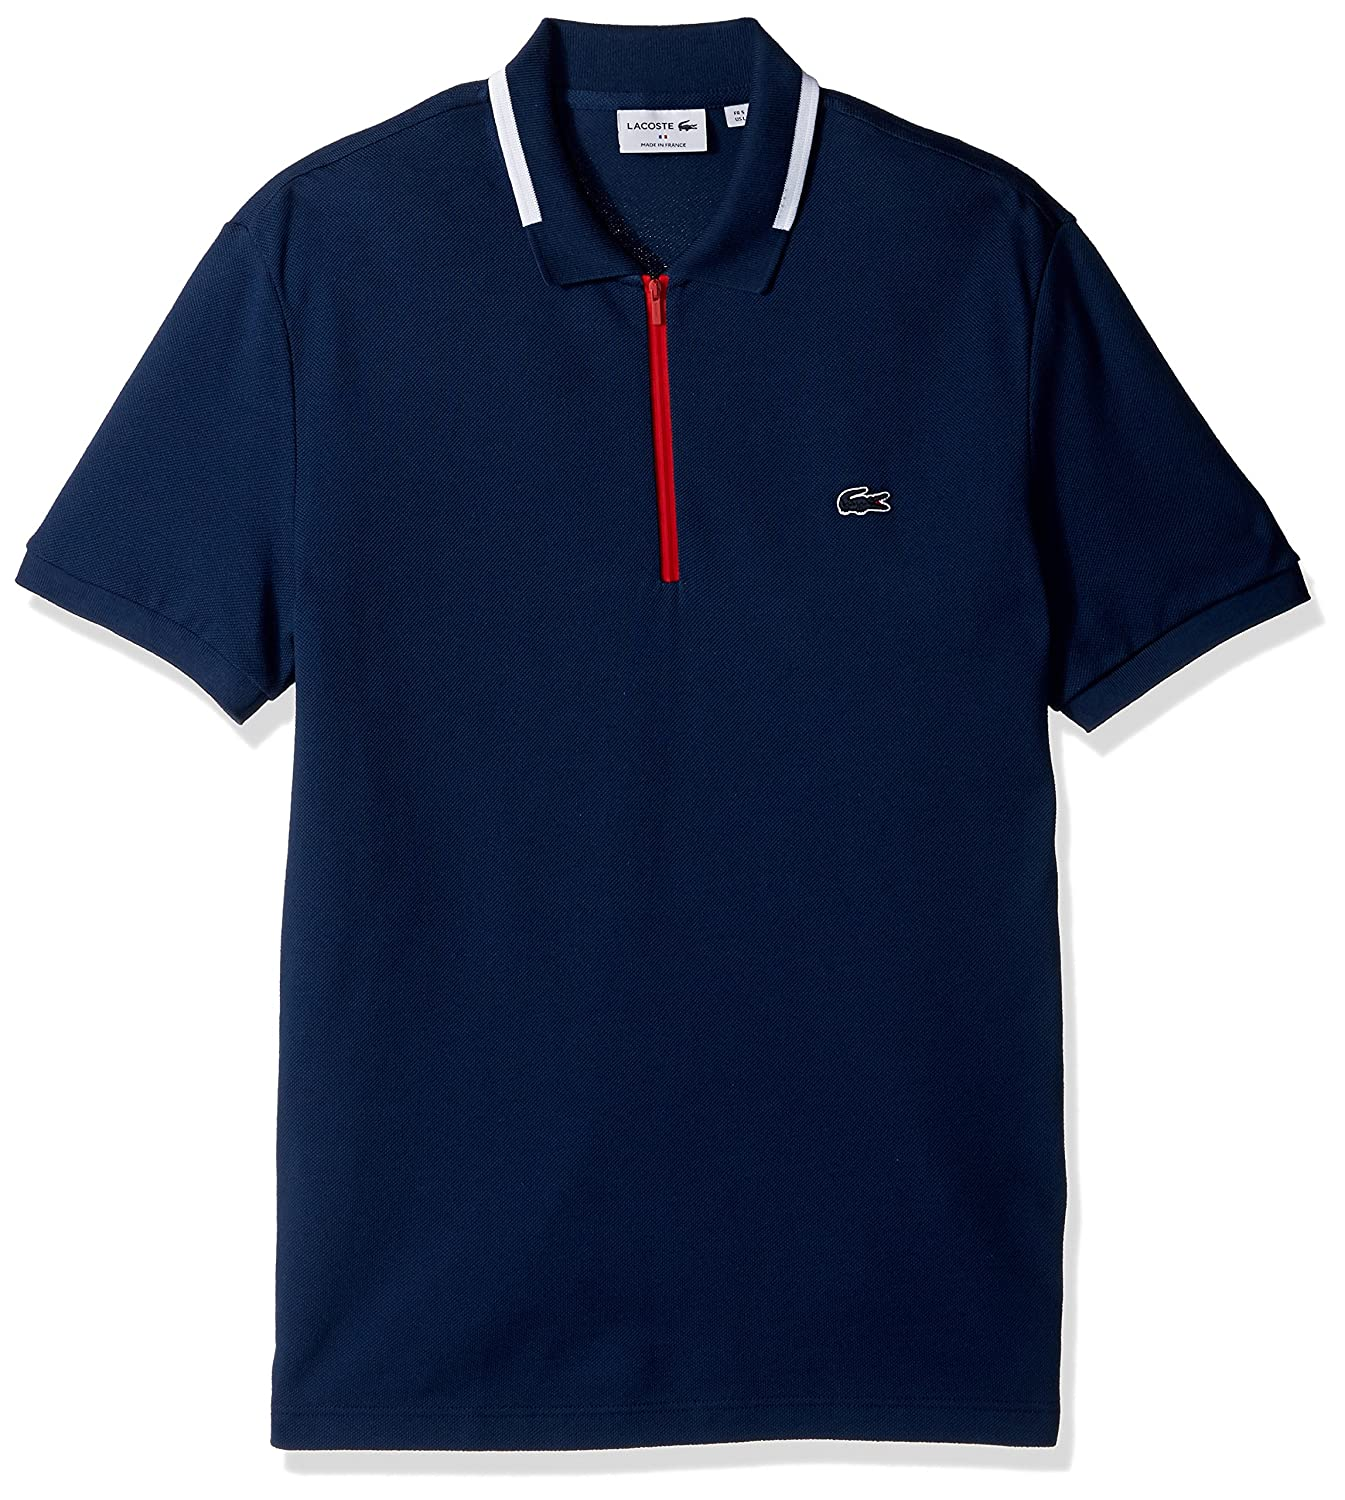 lowest price look out for good out x Lacoste Men's Made in France Zipper Placket Slim Polo, PH2069-51